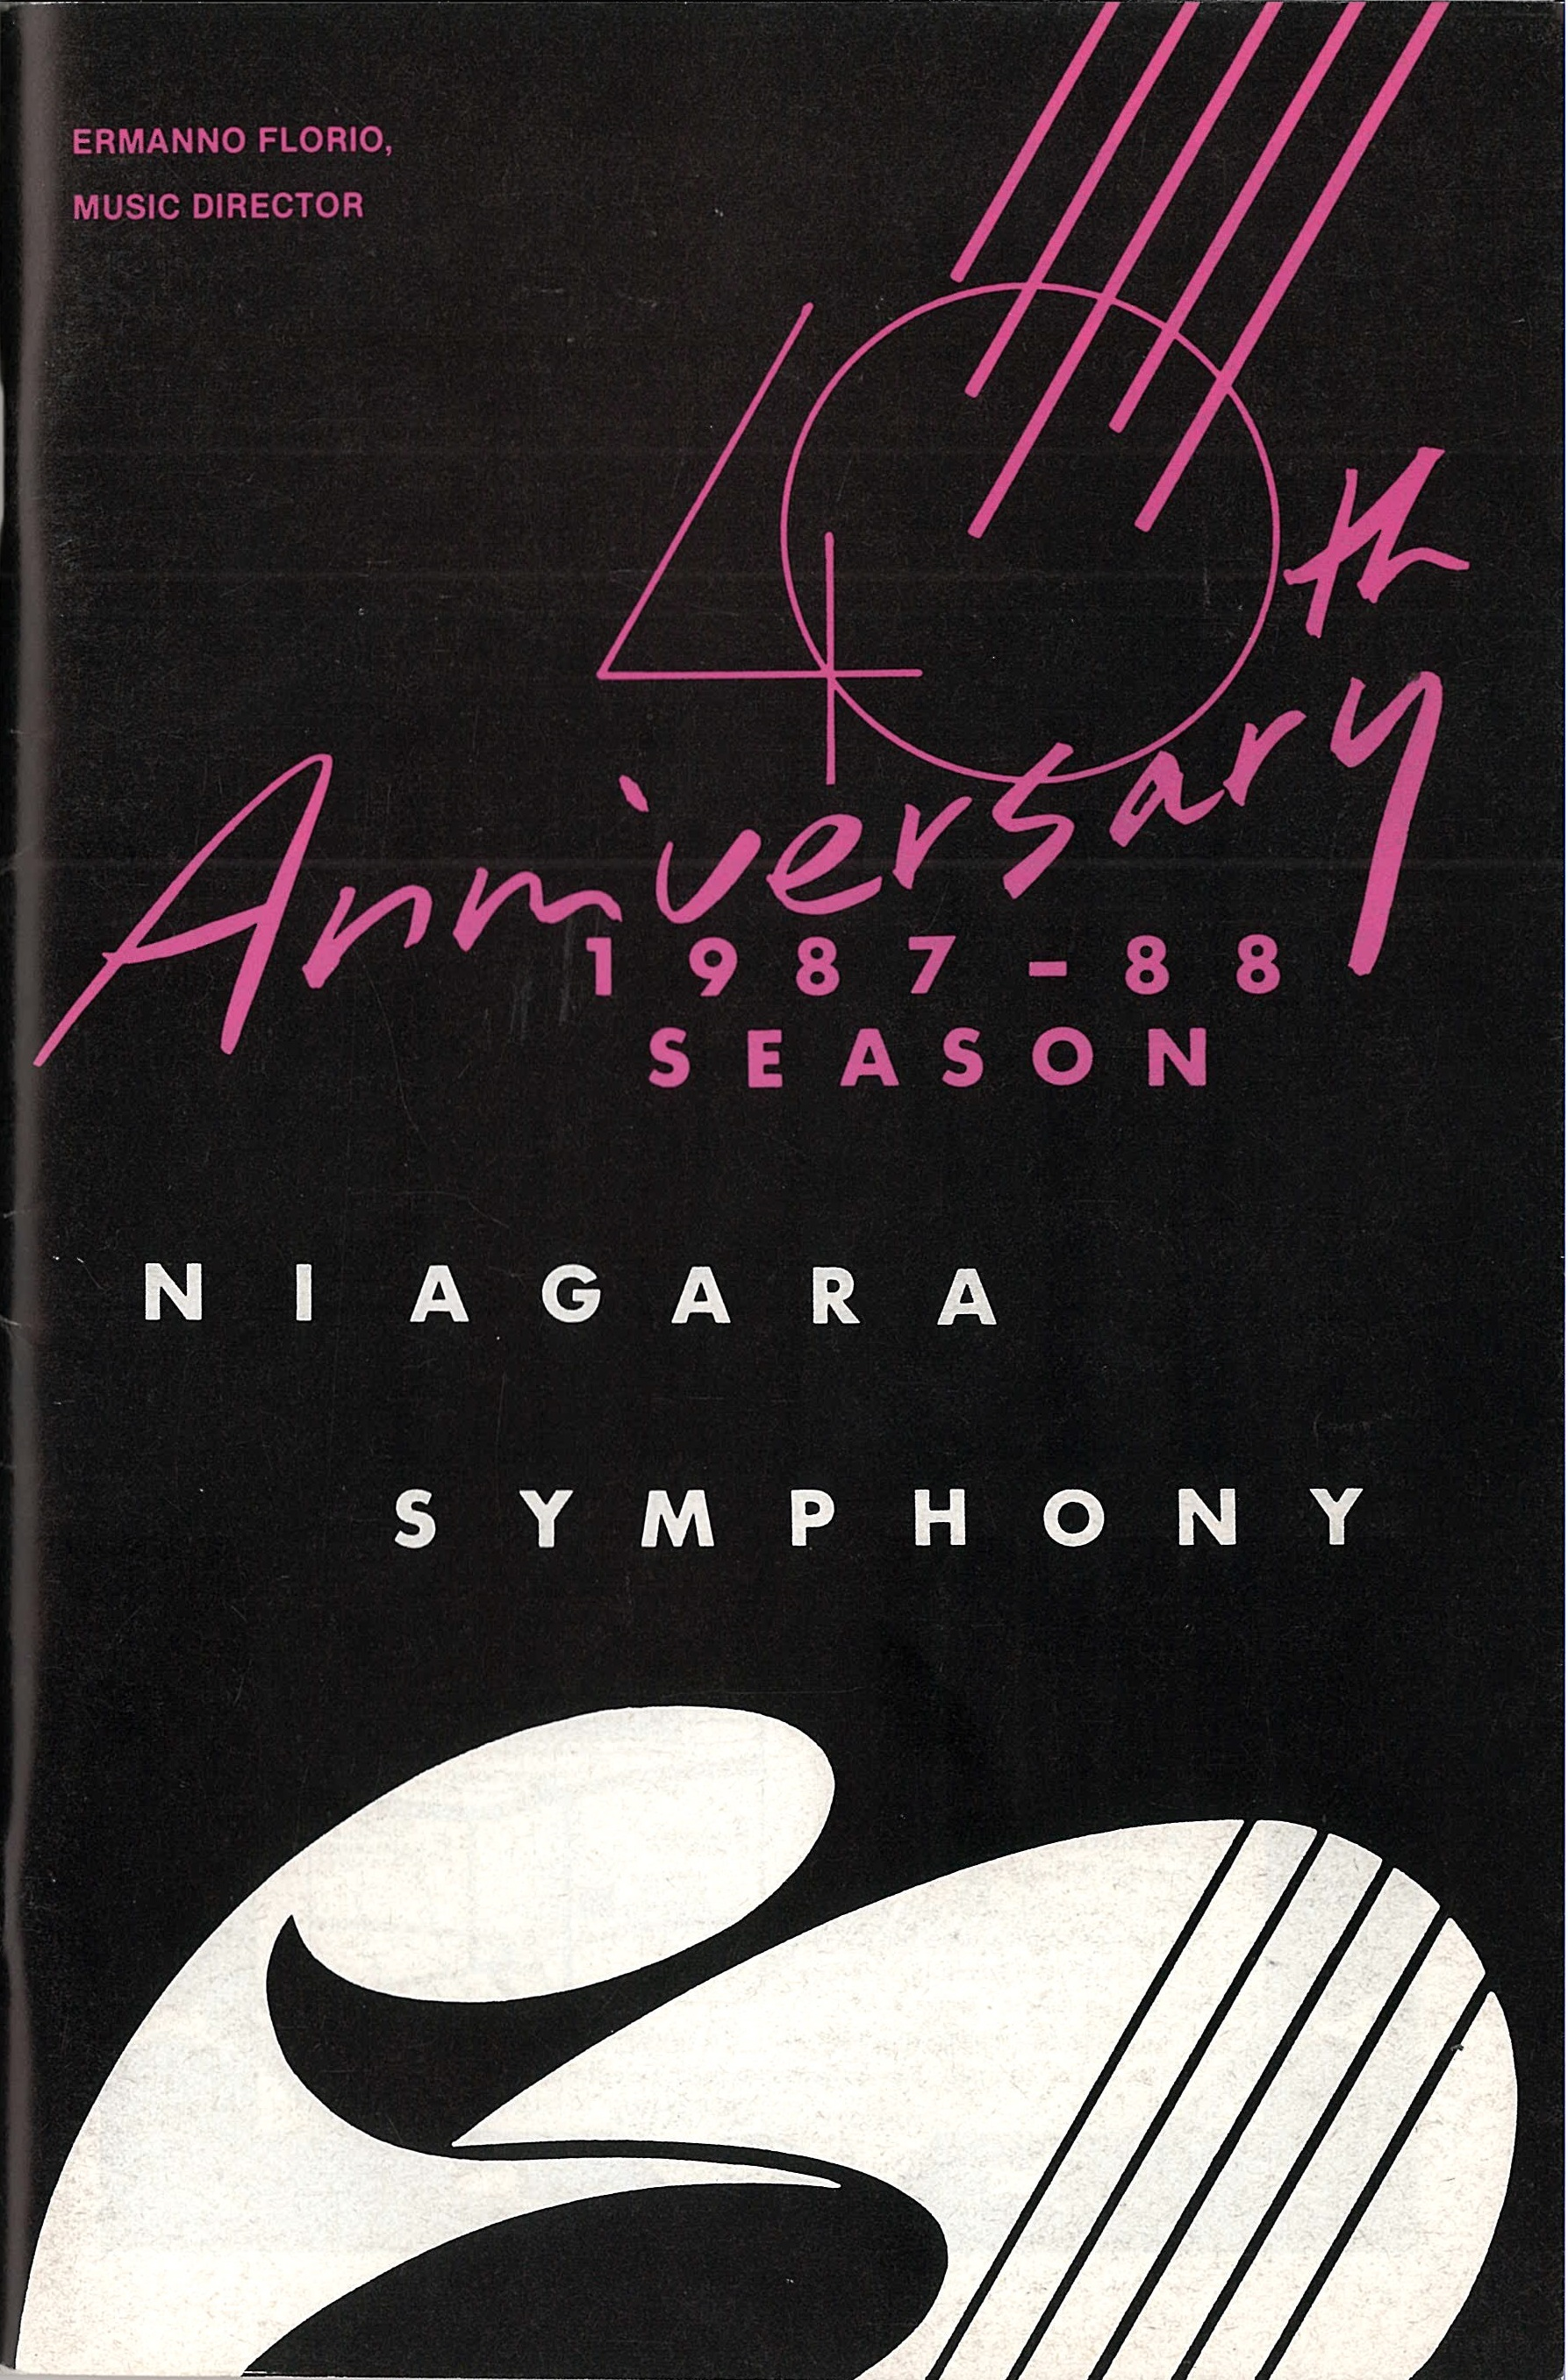 Black, white and pink 40th Anniversary programme